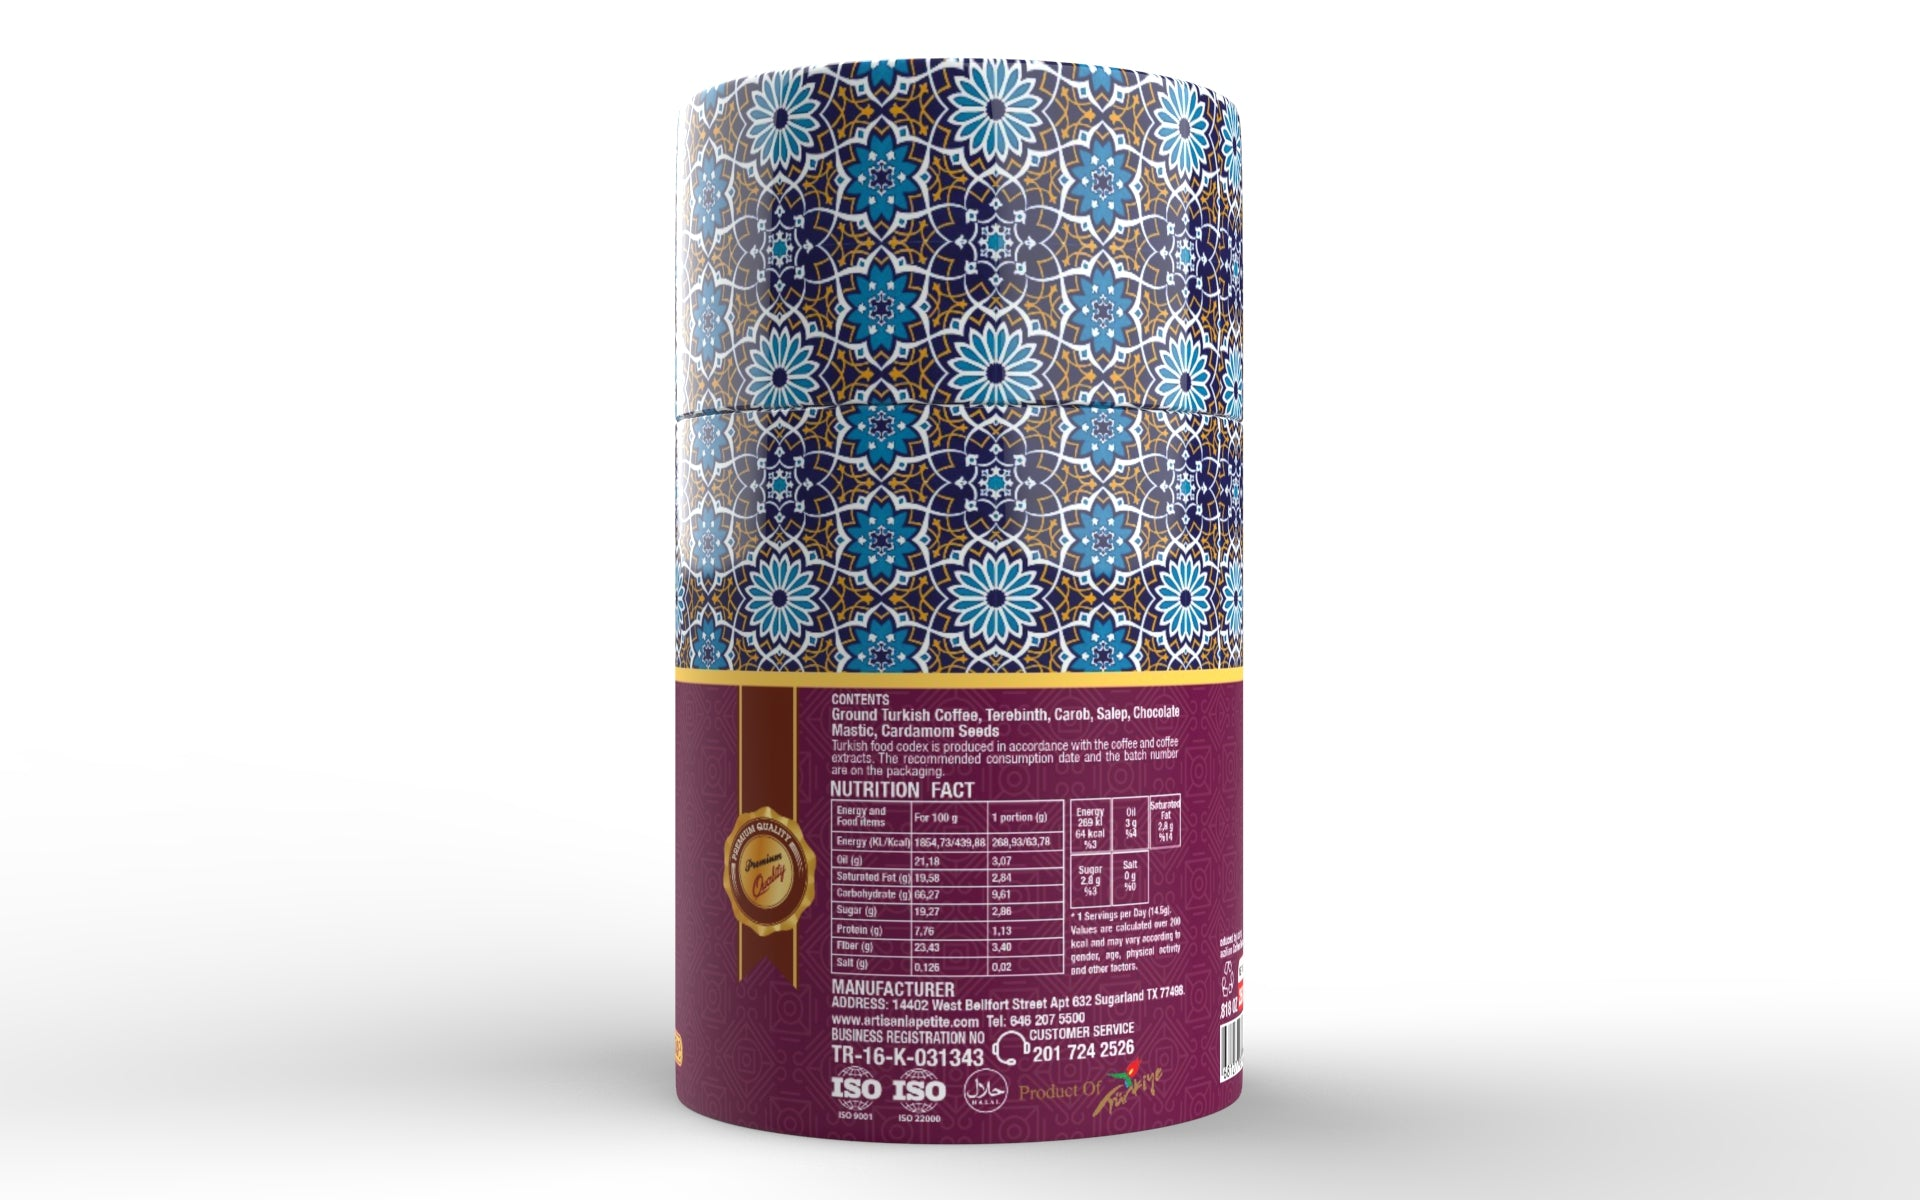 Artisan La Petite Ottoman Dibek Coffee 250g / 8.18 oz Can | Premium Handmade Fine Ground Arabica, Medium Roast, Stone Ground & Forged, Authentic Turkish Specialty, Fresh Roasted, Non-GMO, Vegan, Halal